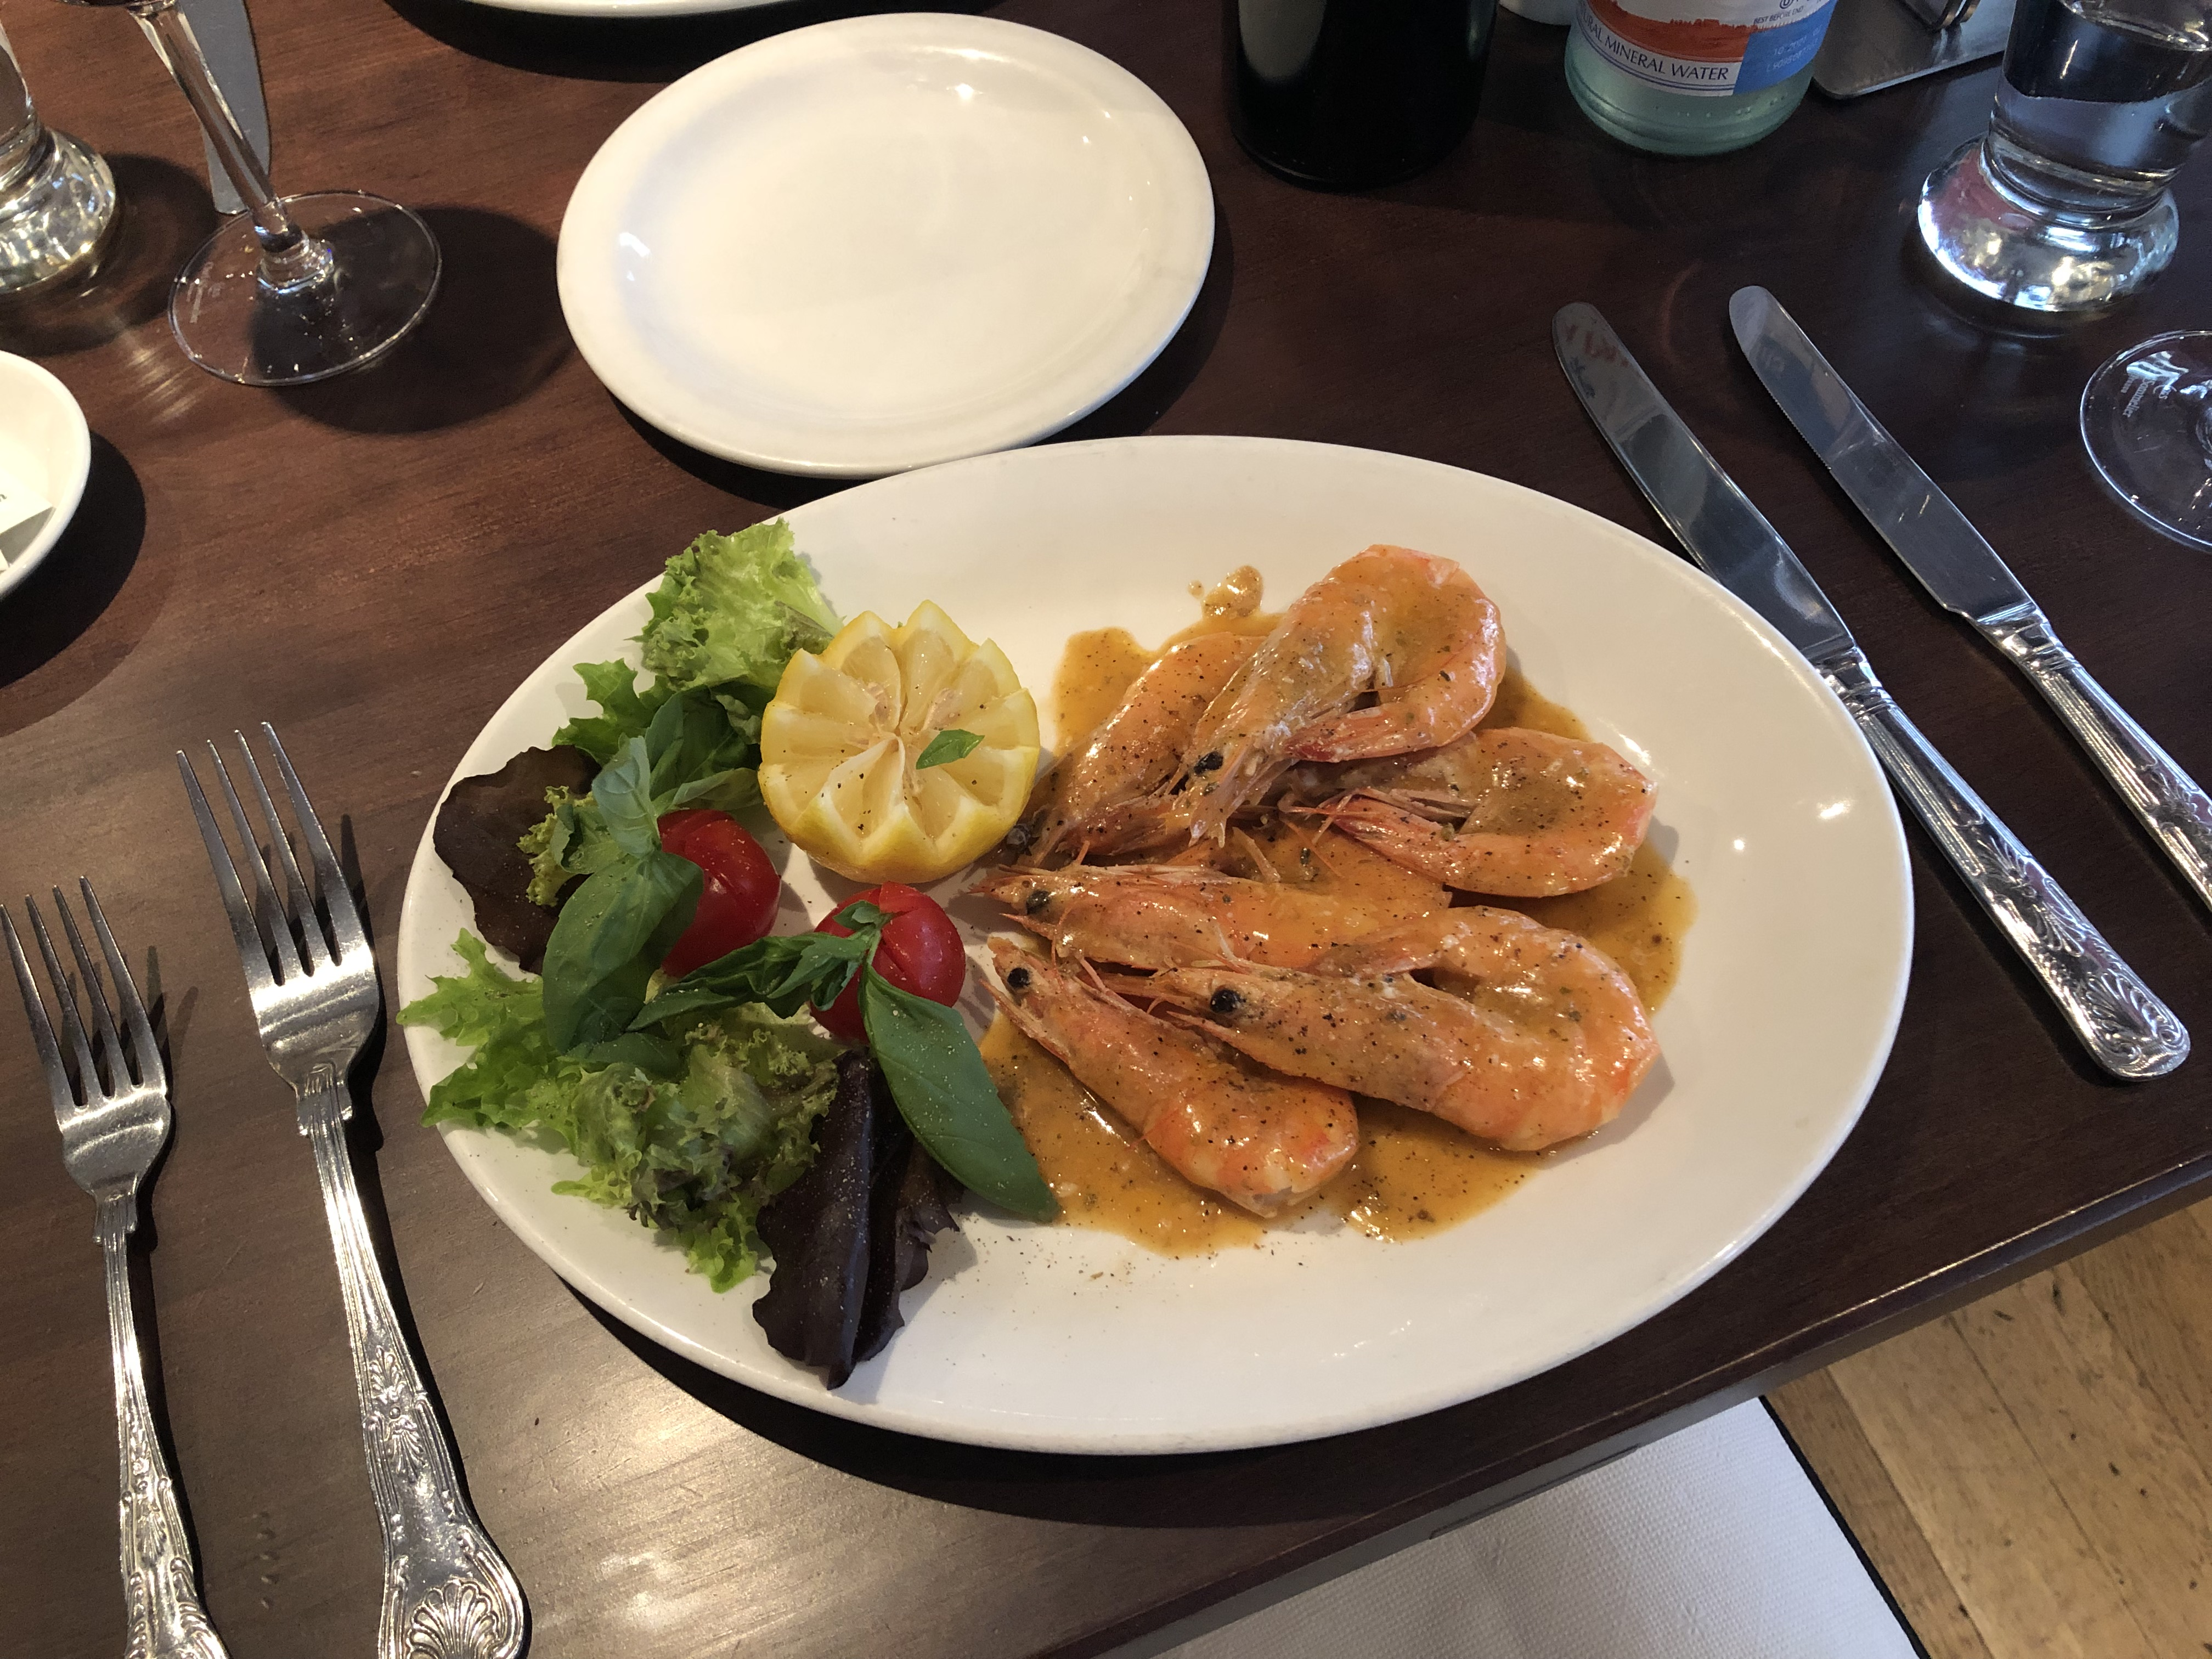 Melanie's Soho - For a Traditional Italian Experience: Starter - Gamberoni Prawns